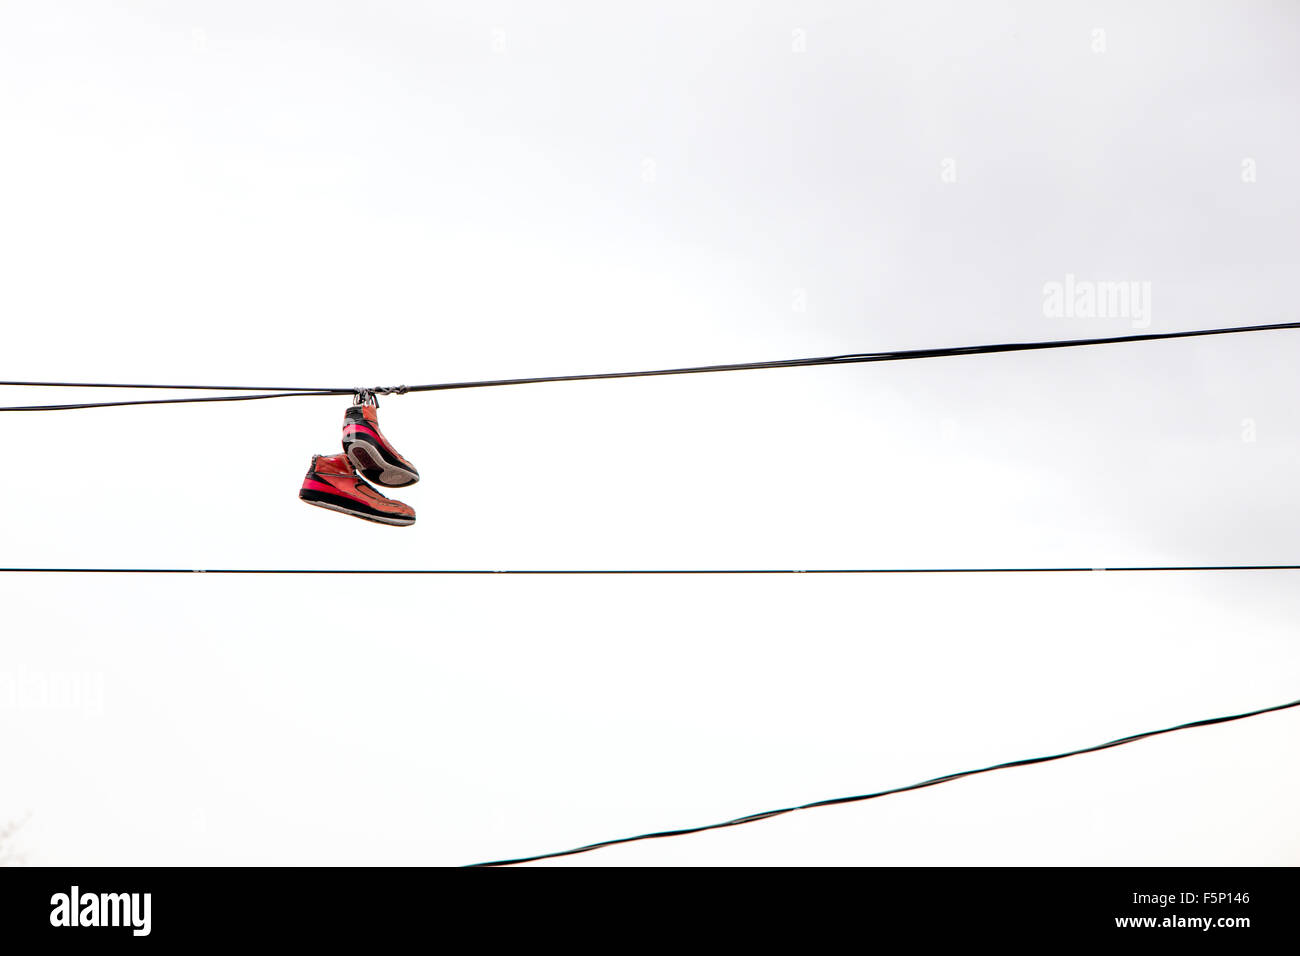 Sneakers On Power Lines Stock Photos & Sneakers On Power Lines Stock ...